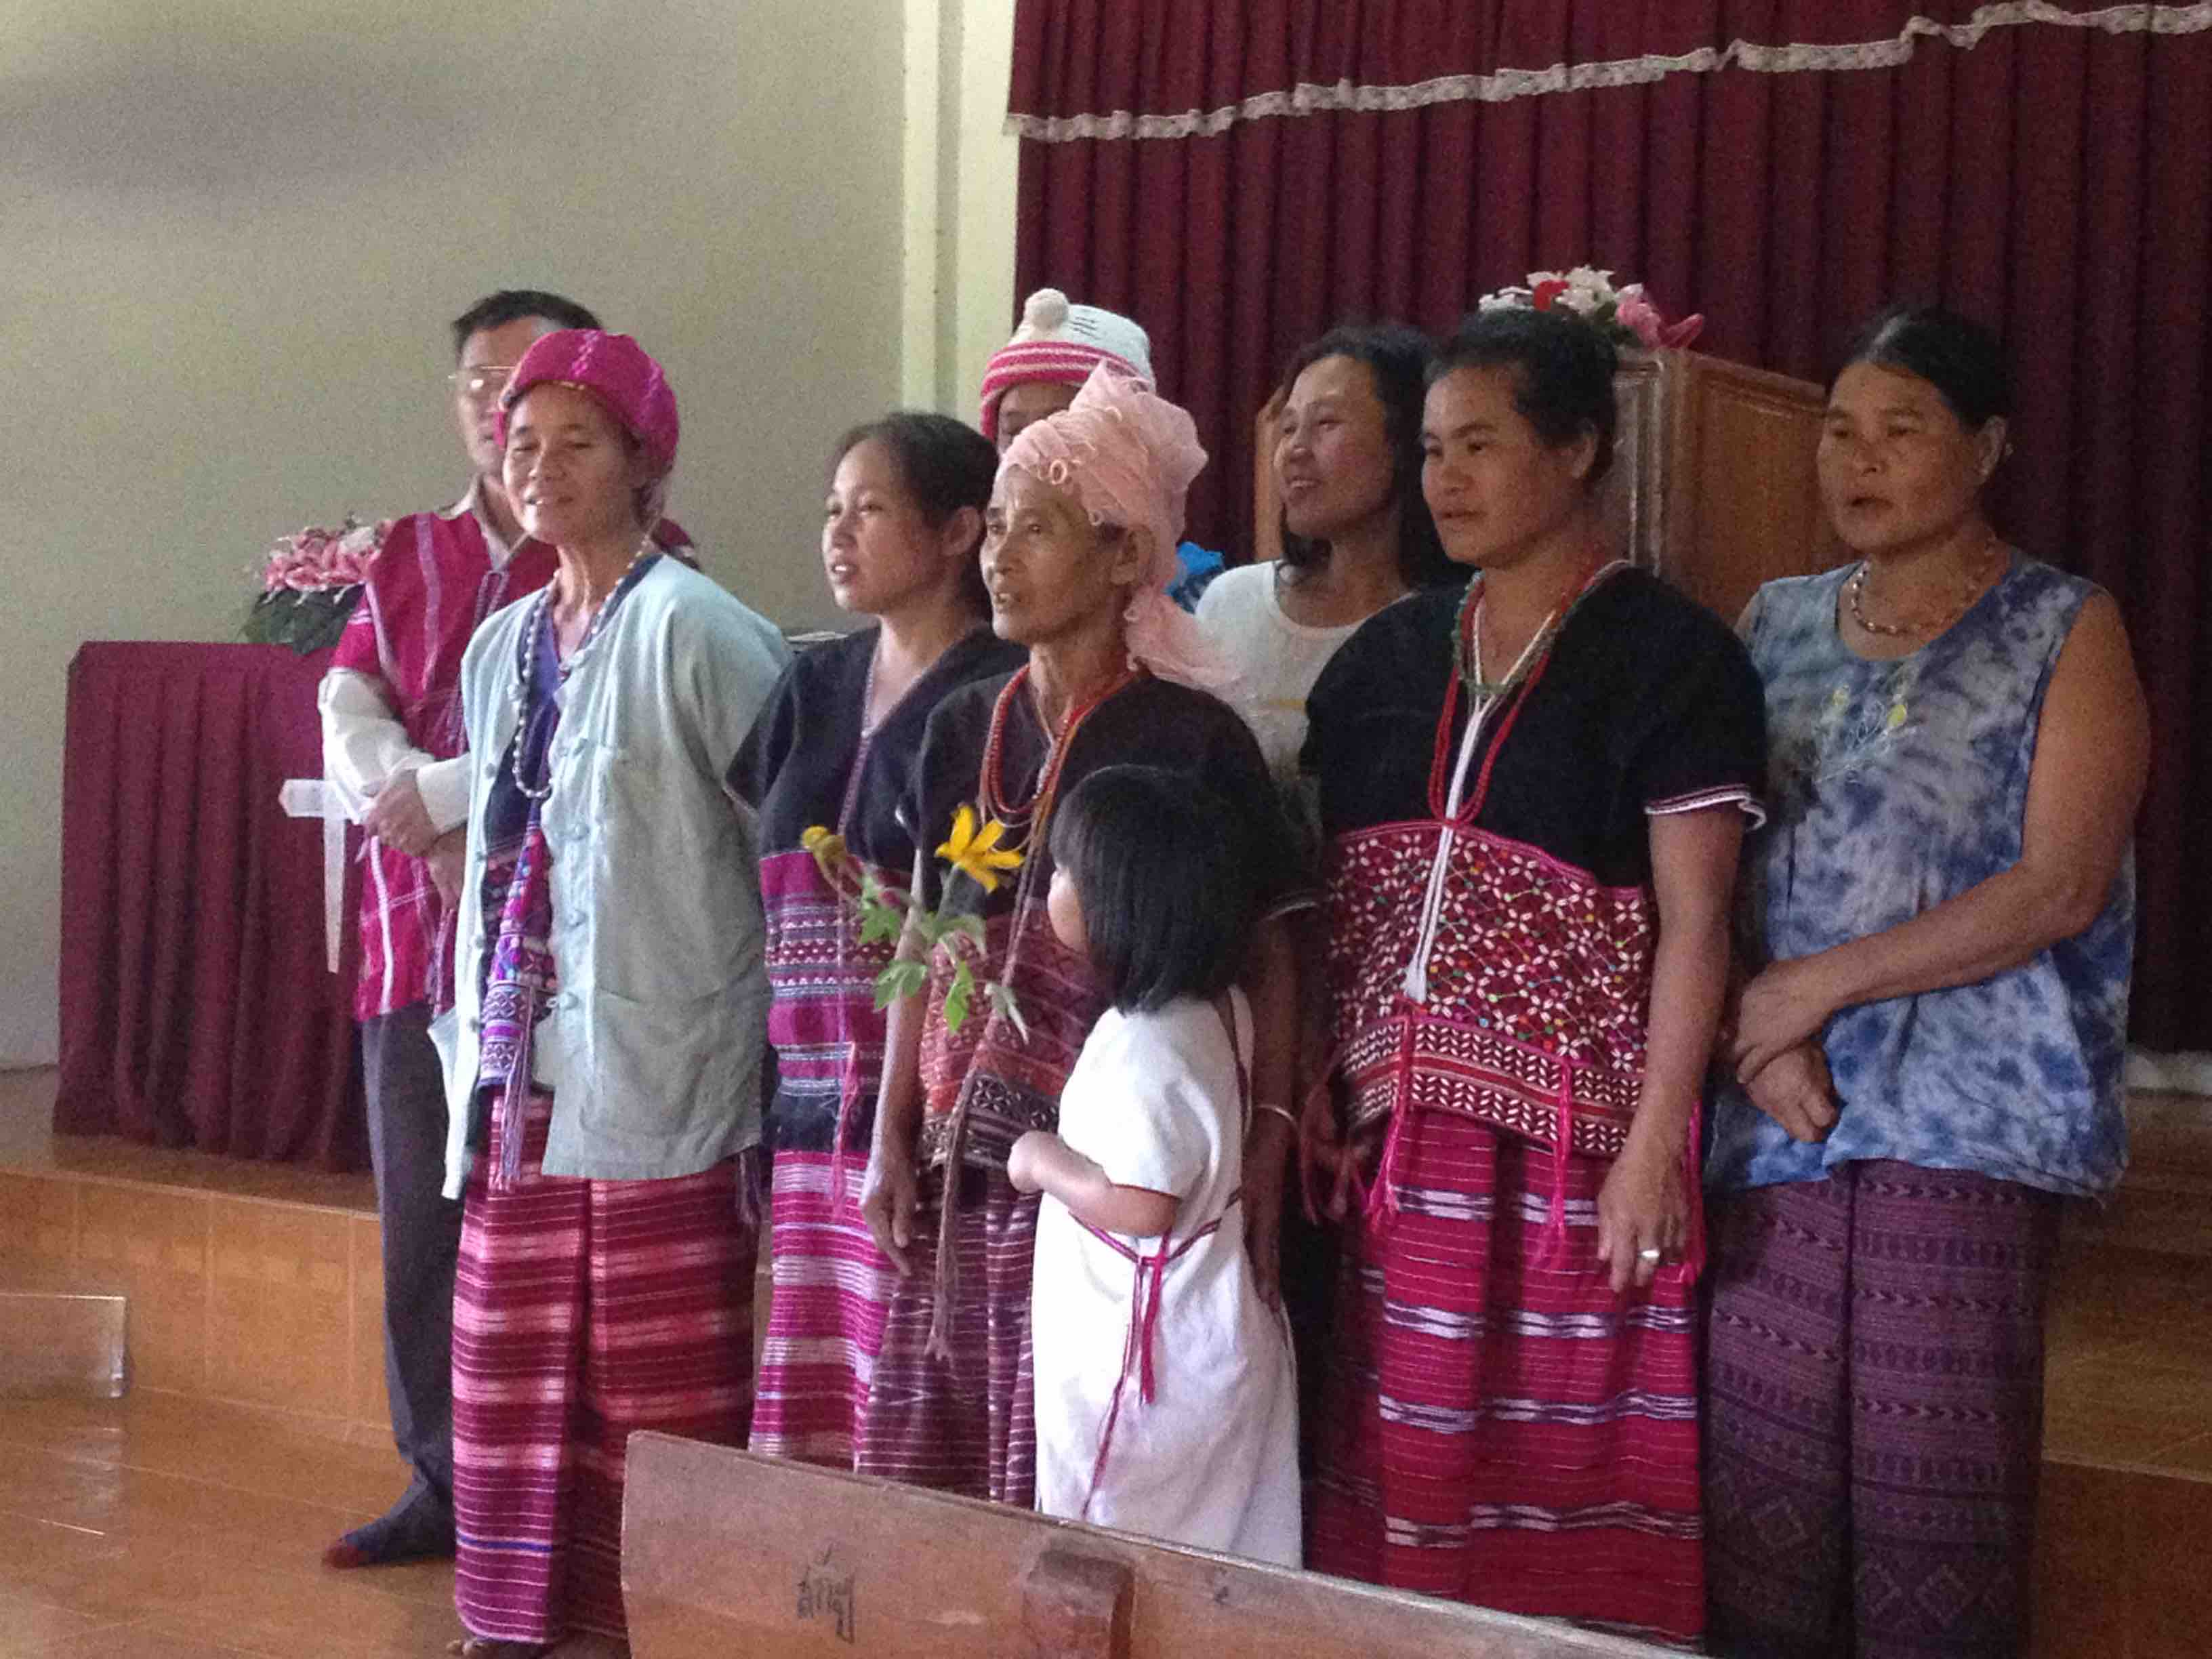 Karen people at church